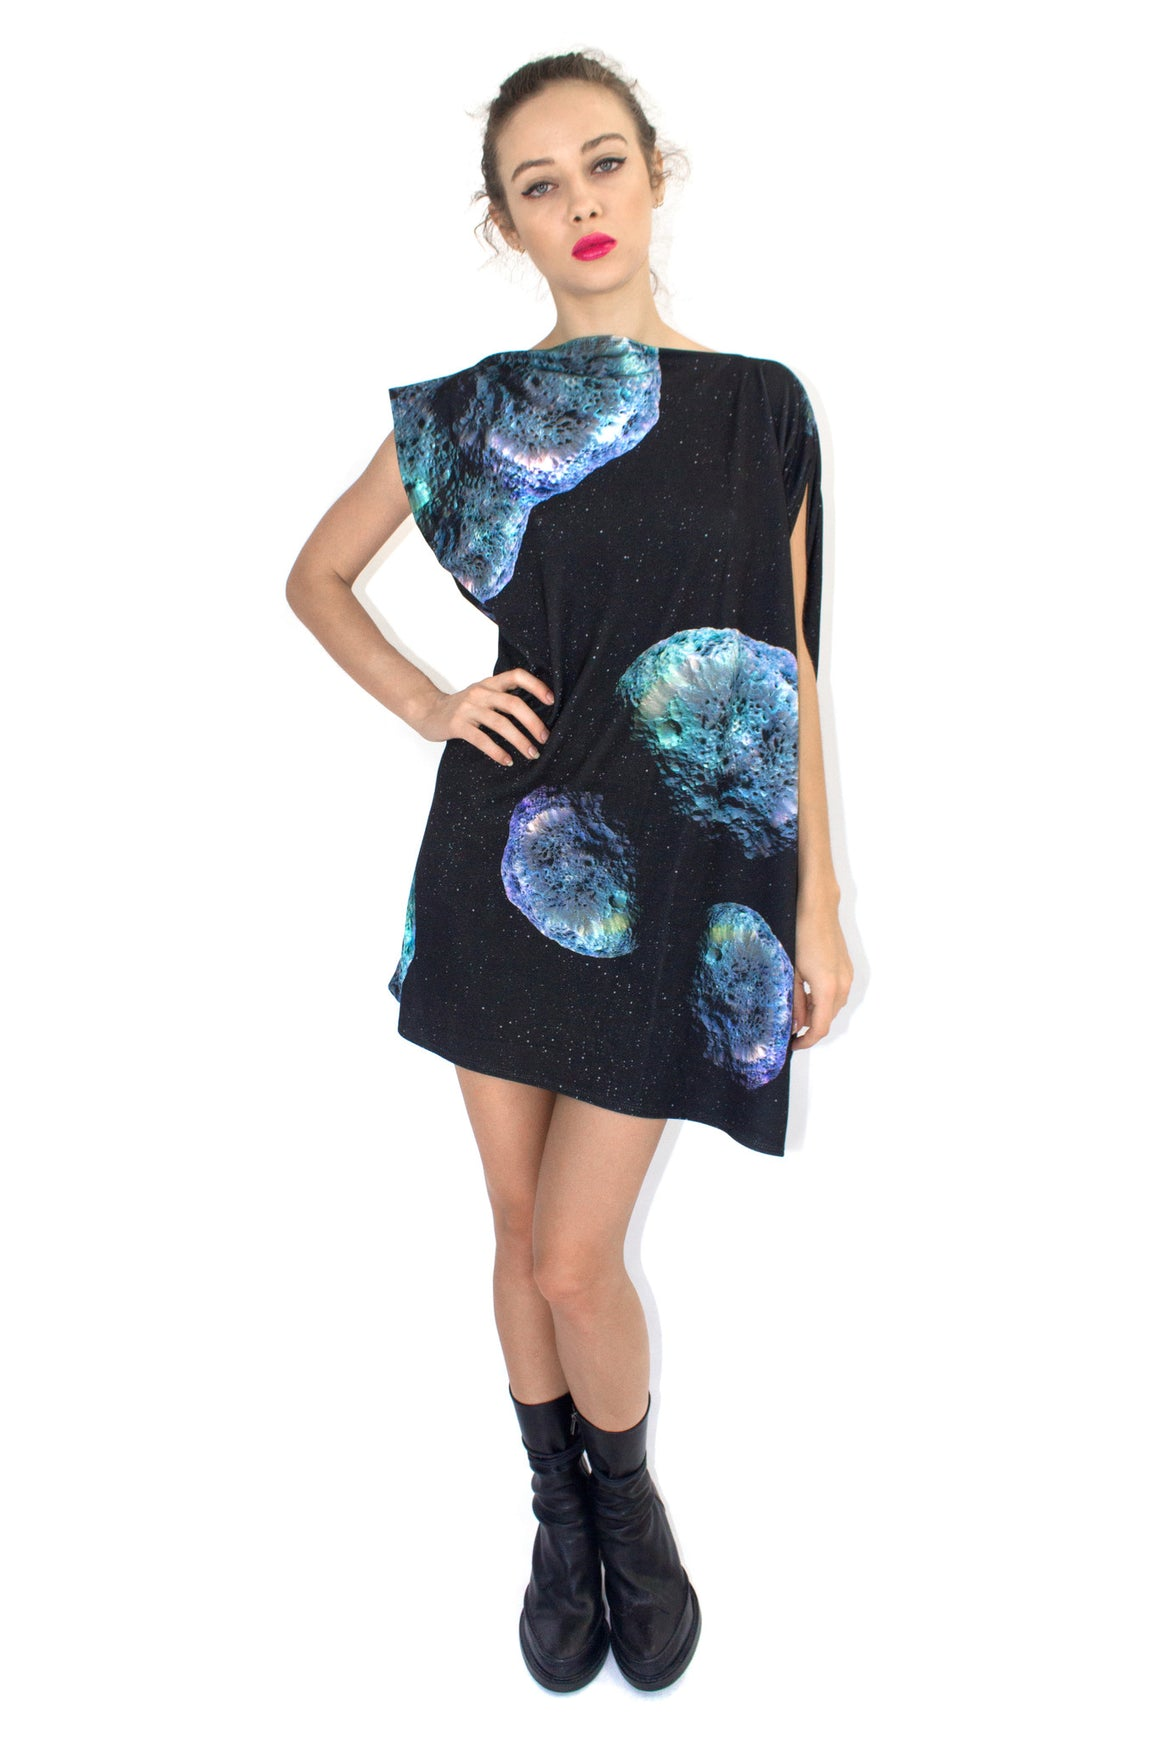 Hyperion Galaxy Dress, Shadowplay New York, Galaxy Print Clothing